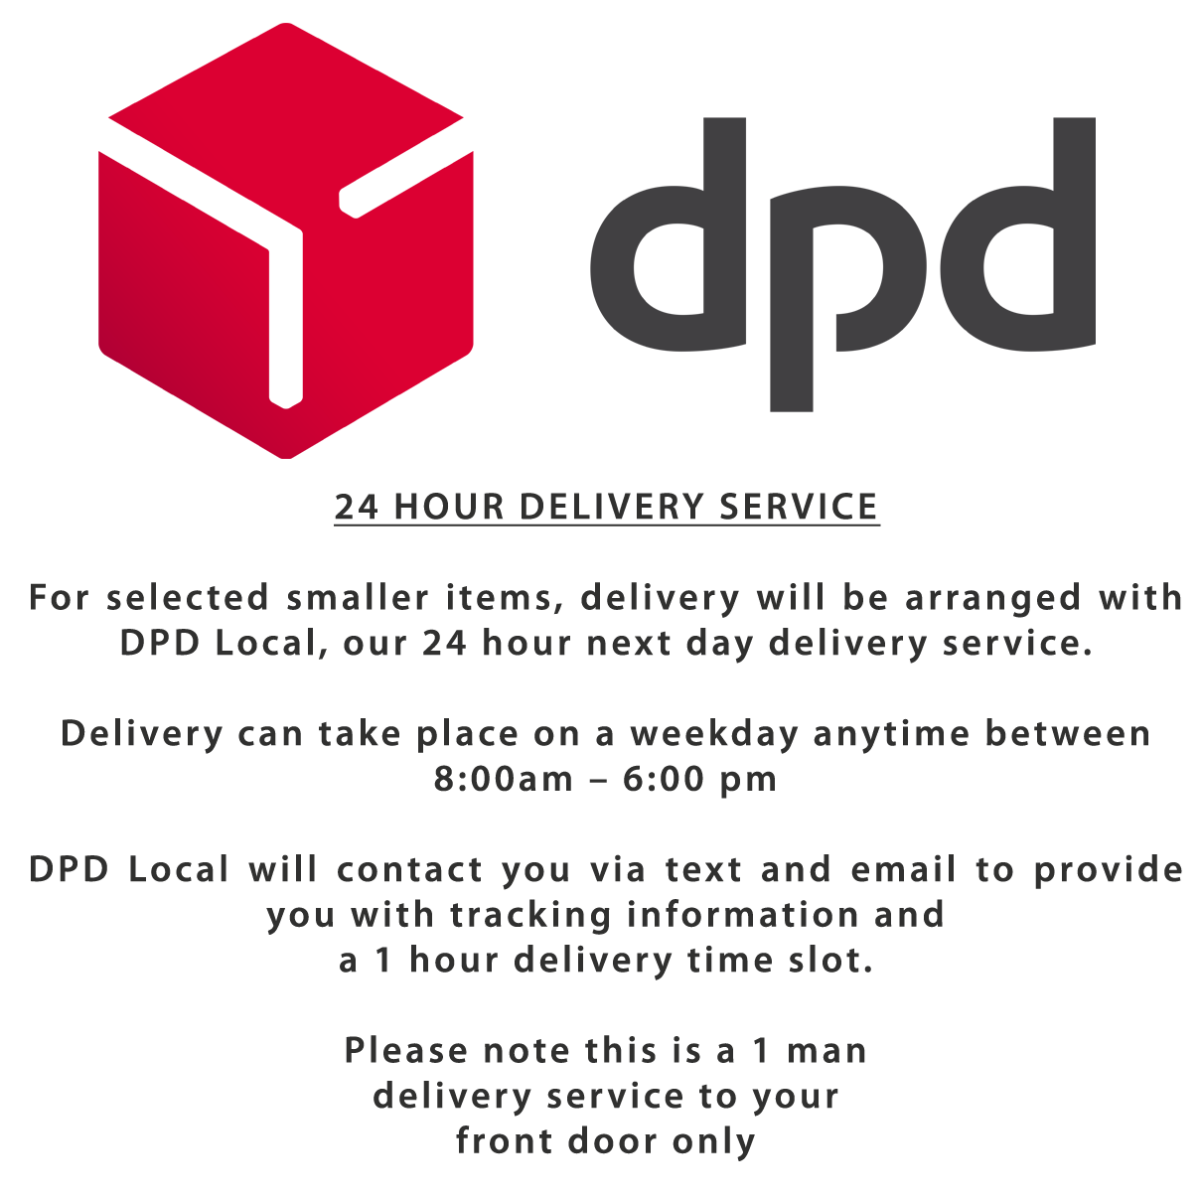 DPD 24 hour delivery